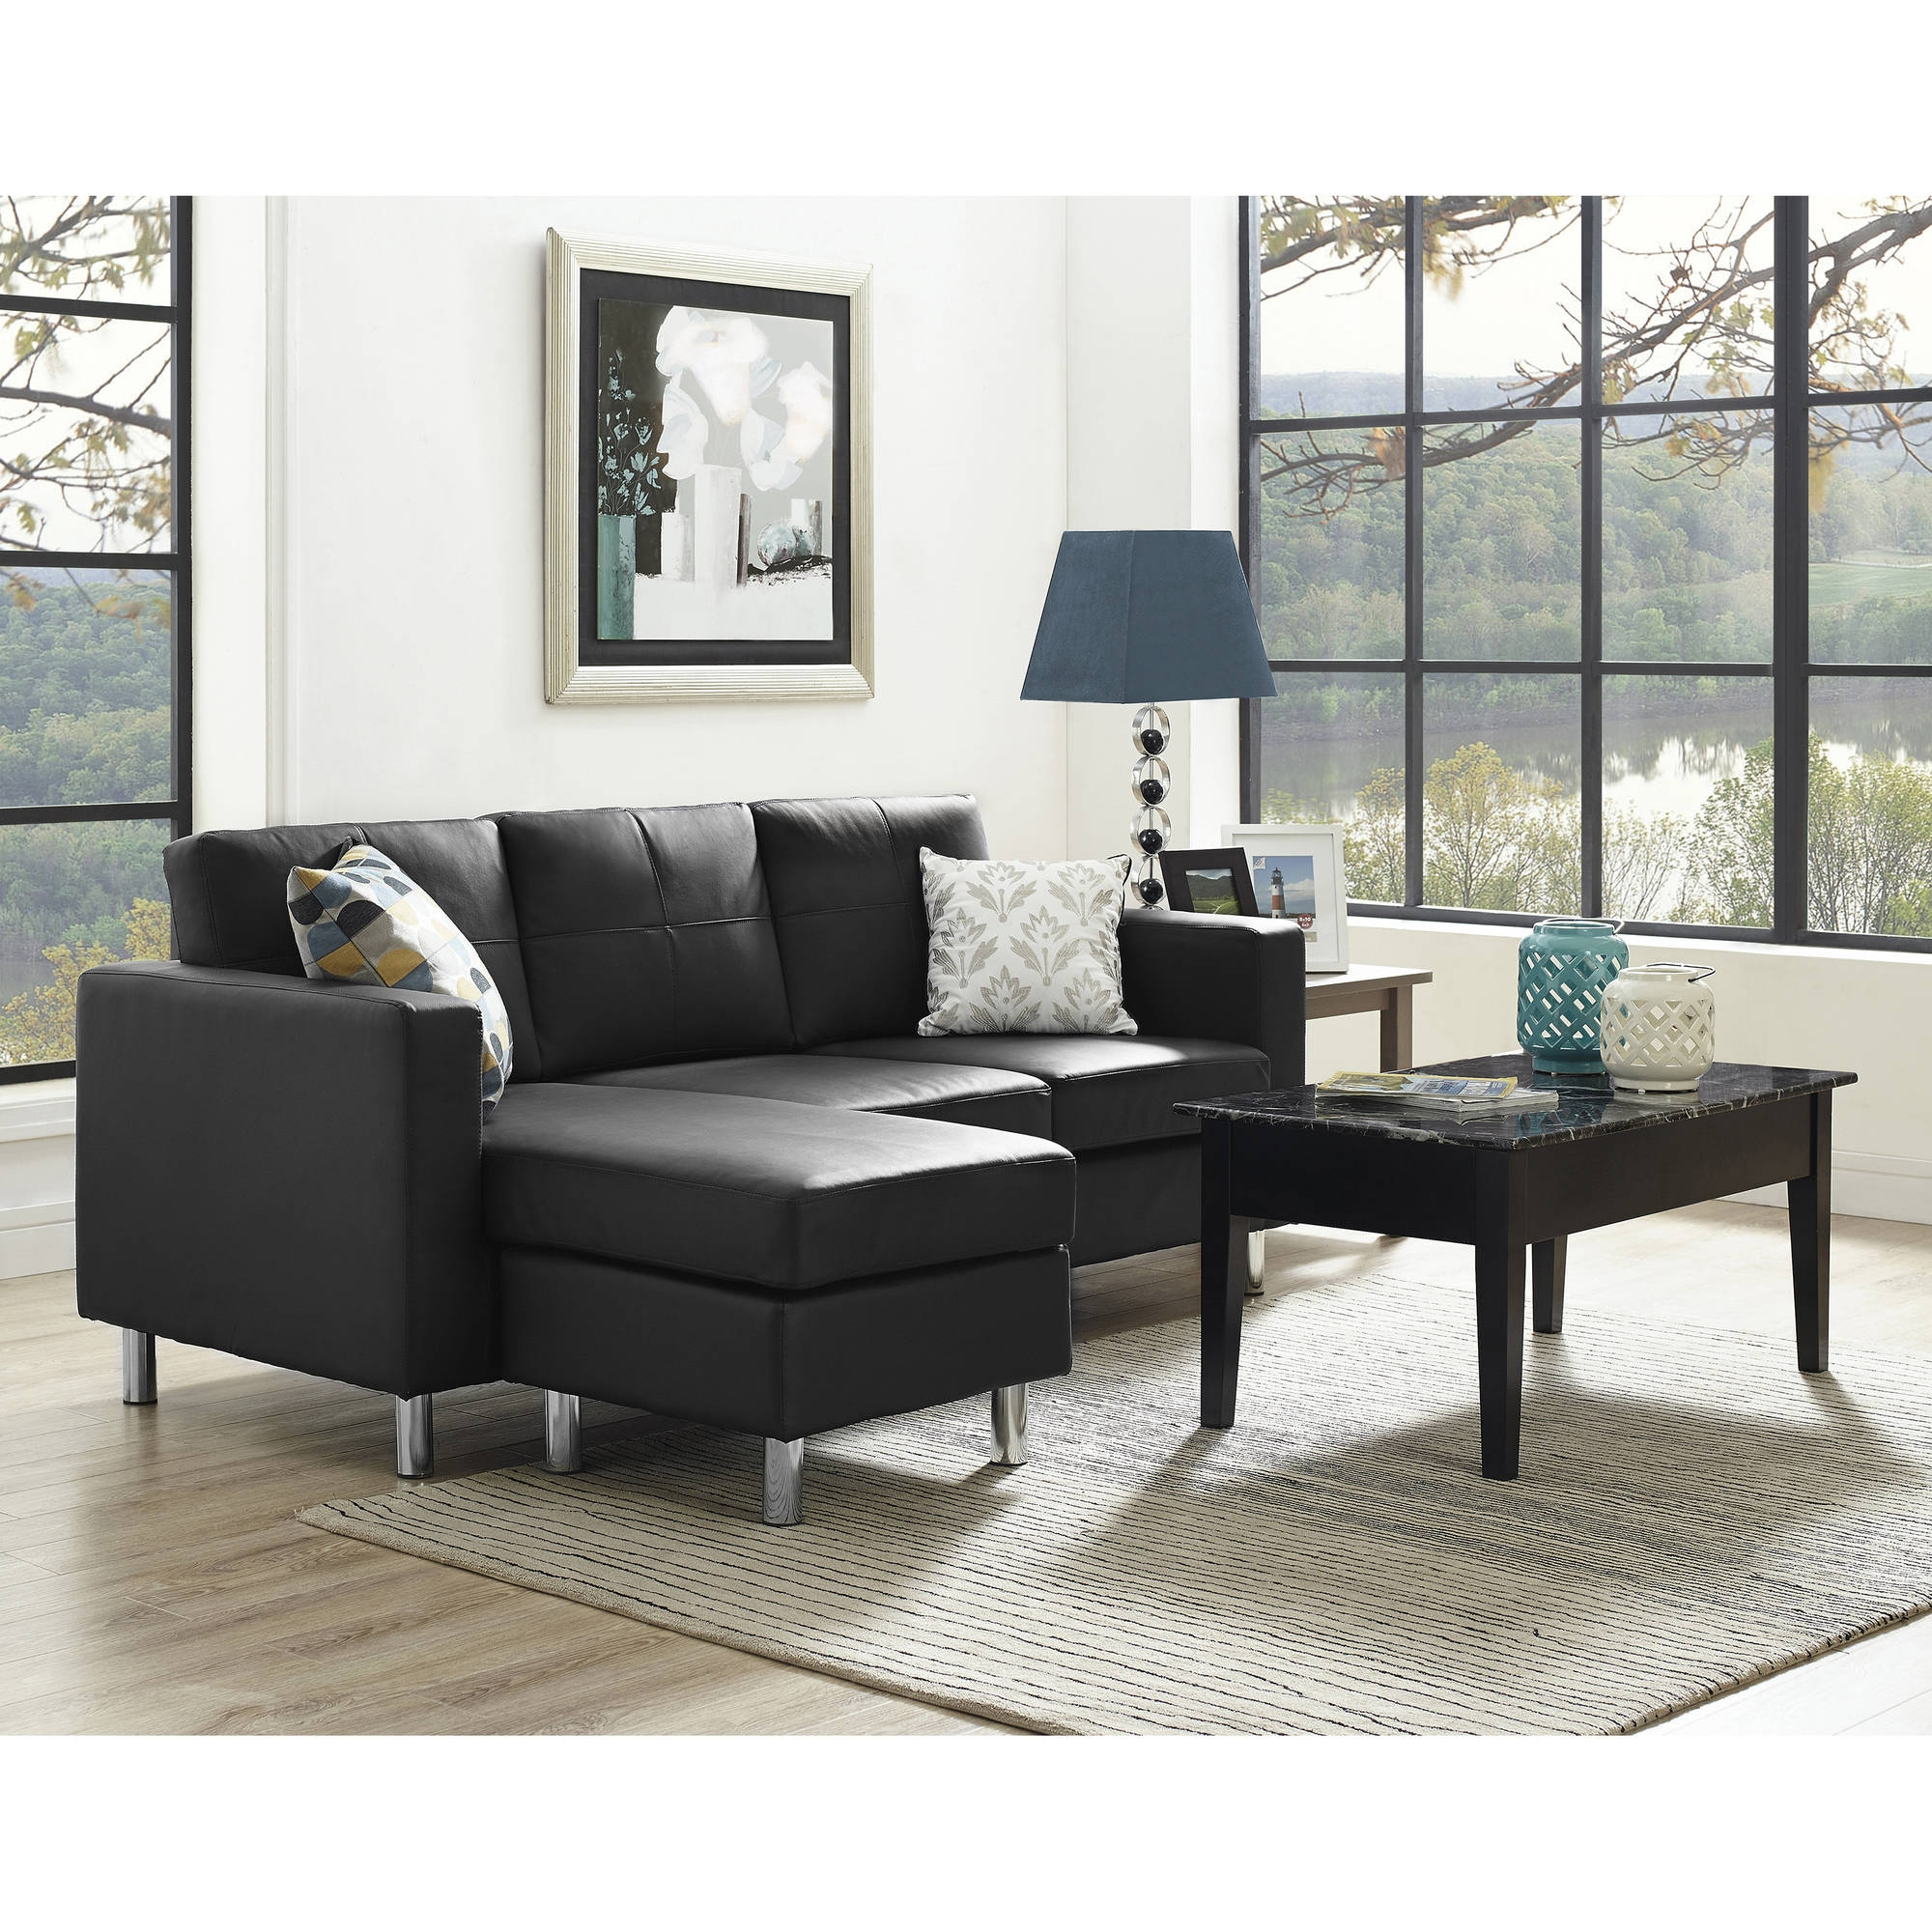 Dorel Living Small Spaces Configurable Sectional Sofa Multiple For Small Sectional Sofa (View 5 of 15)